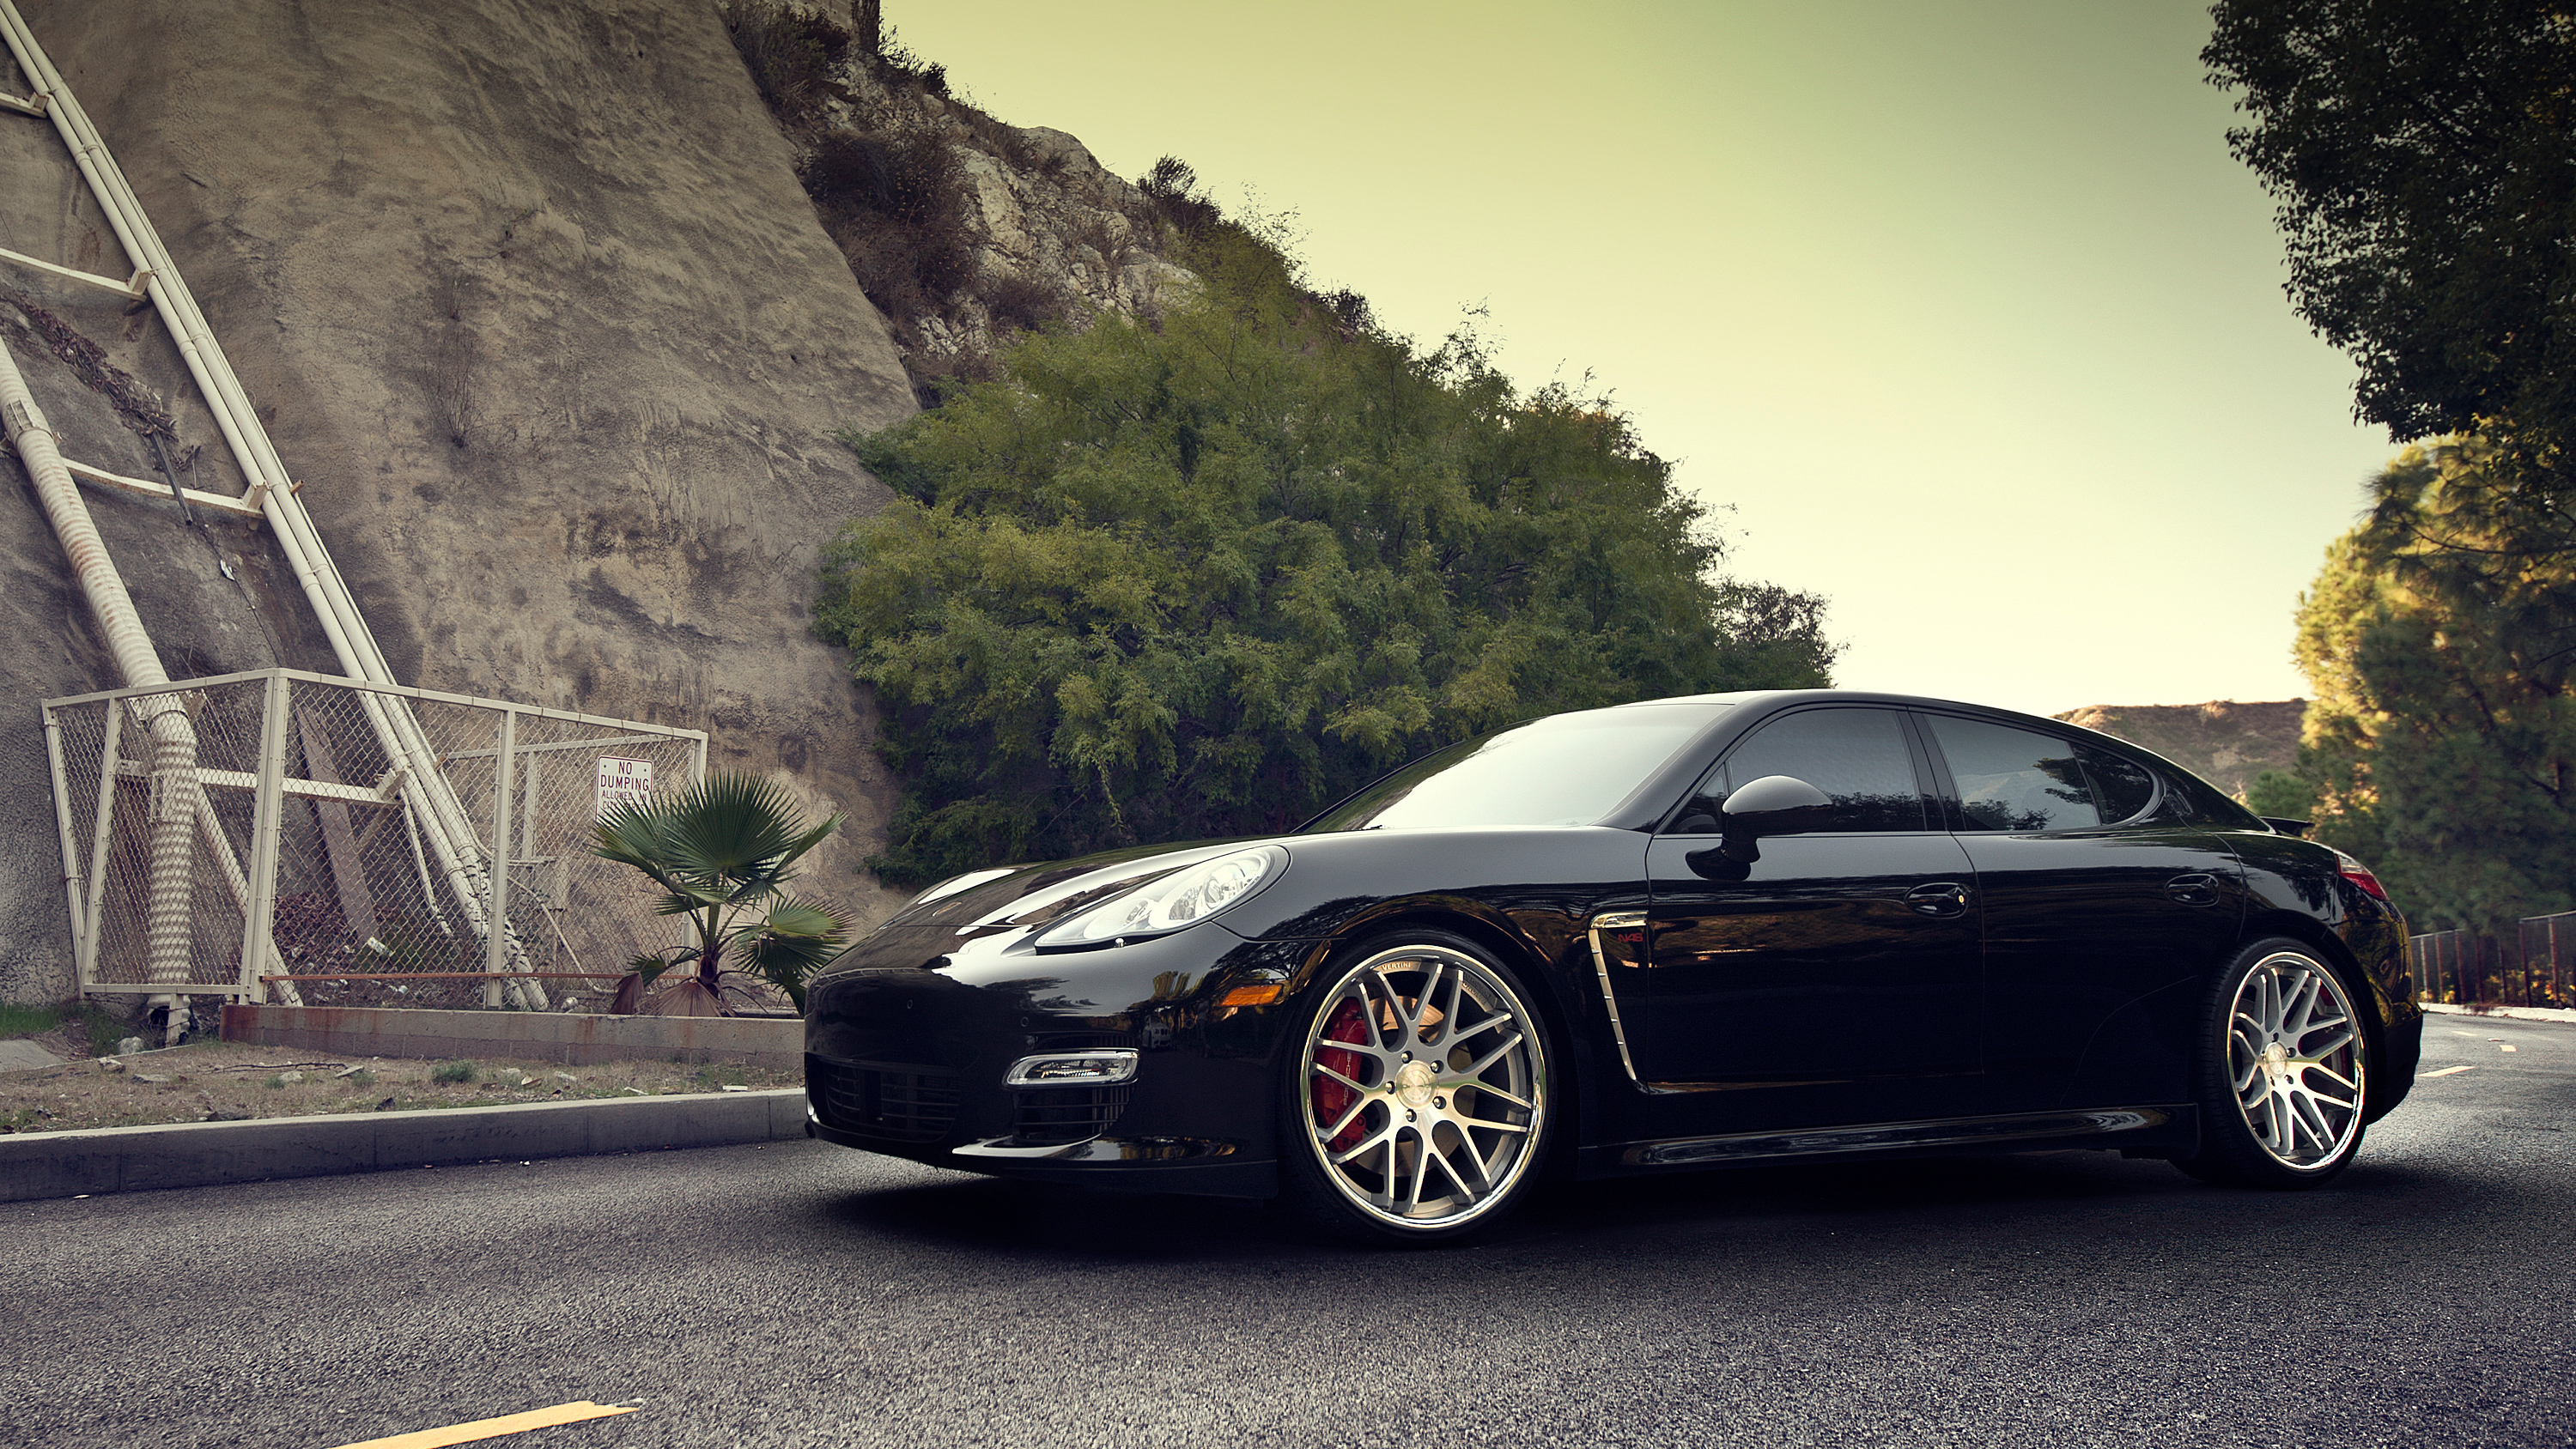 40 Best HD Porsche Panamera Turbo Wallpapers 3000x1688